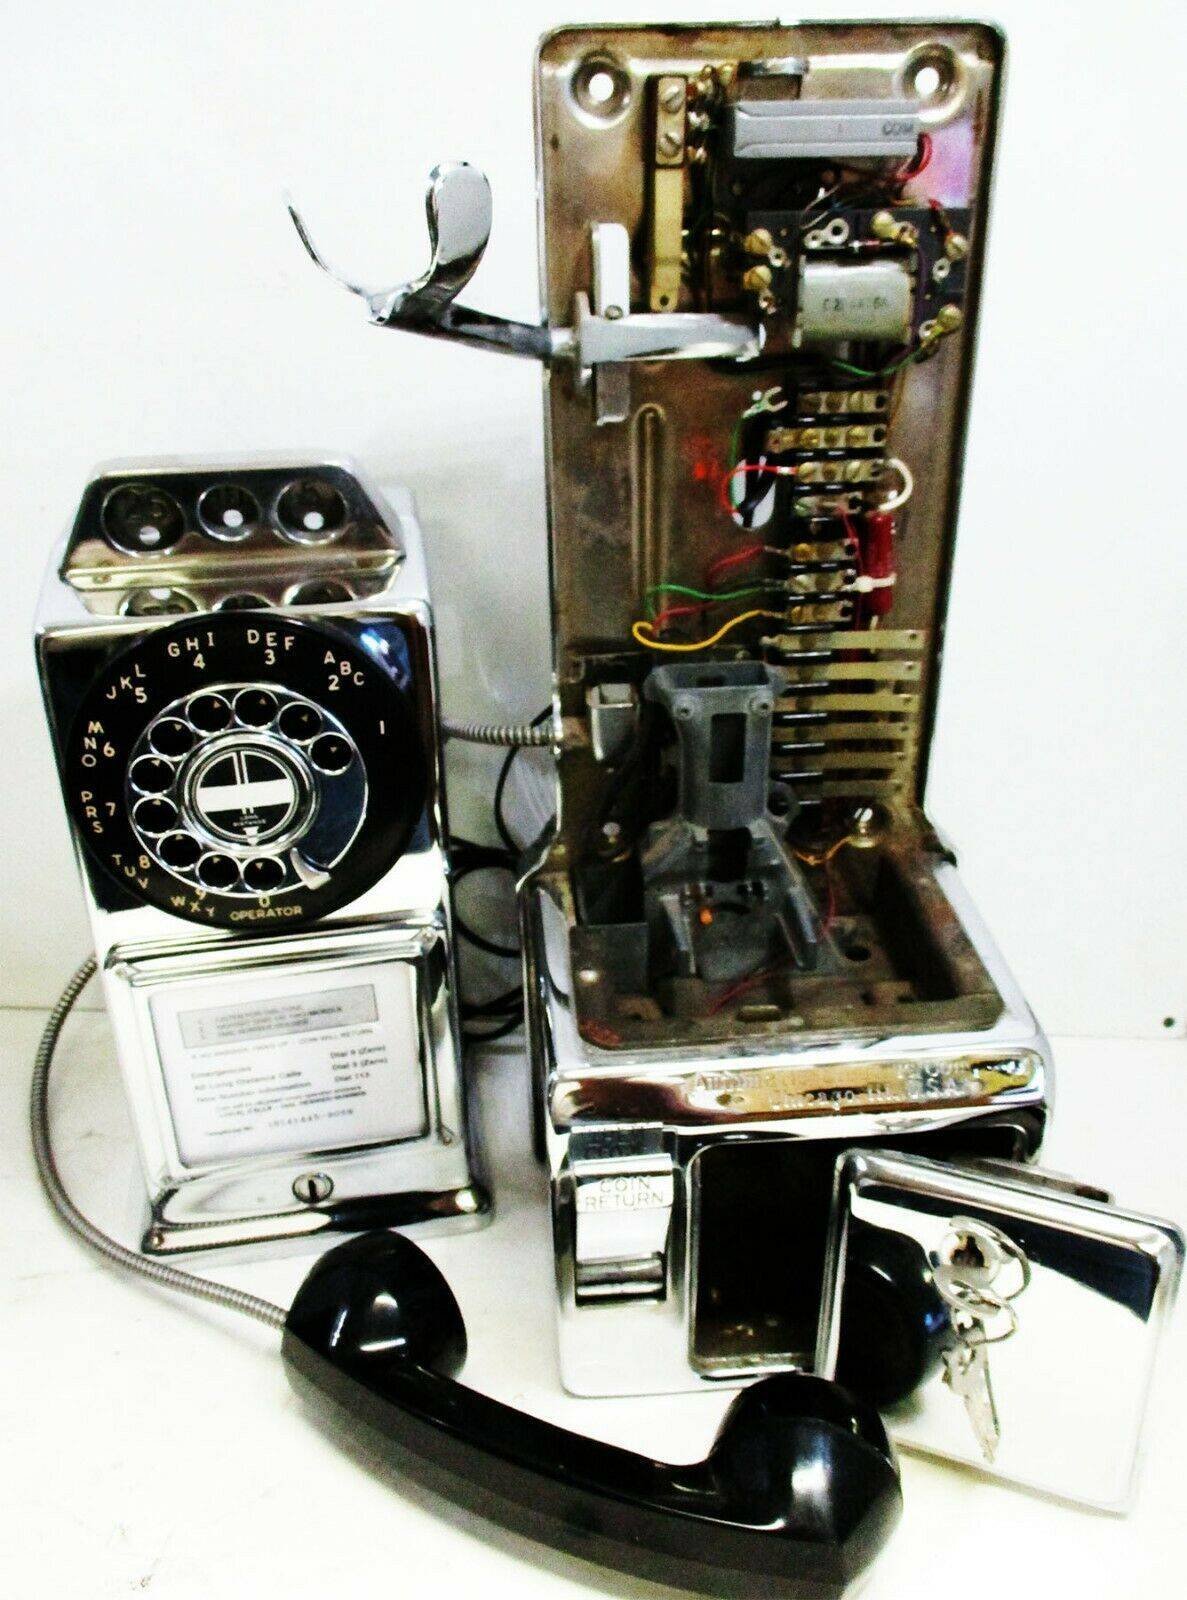 Automatic Electric Chrome Pay Telephone 3 Coin Slot 1960's Rotary Dial